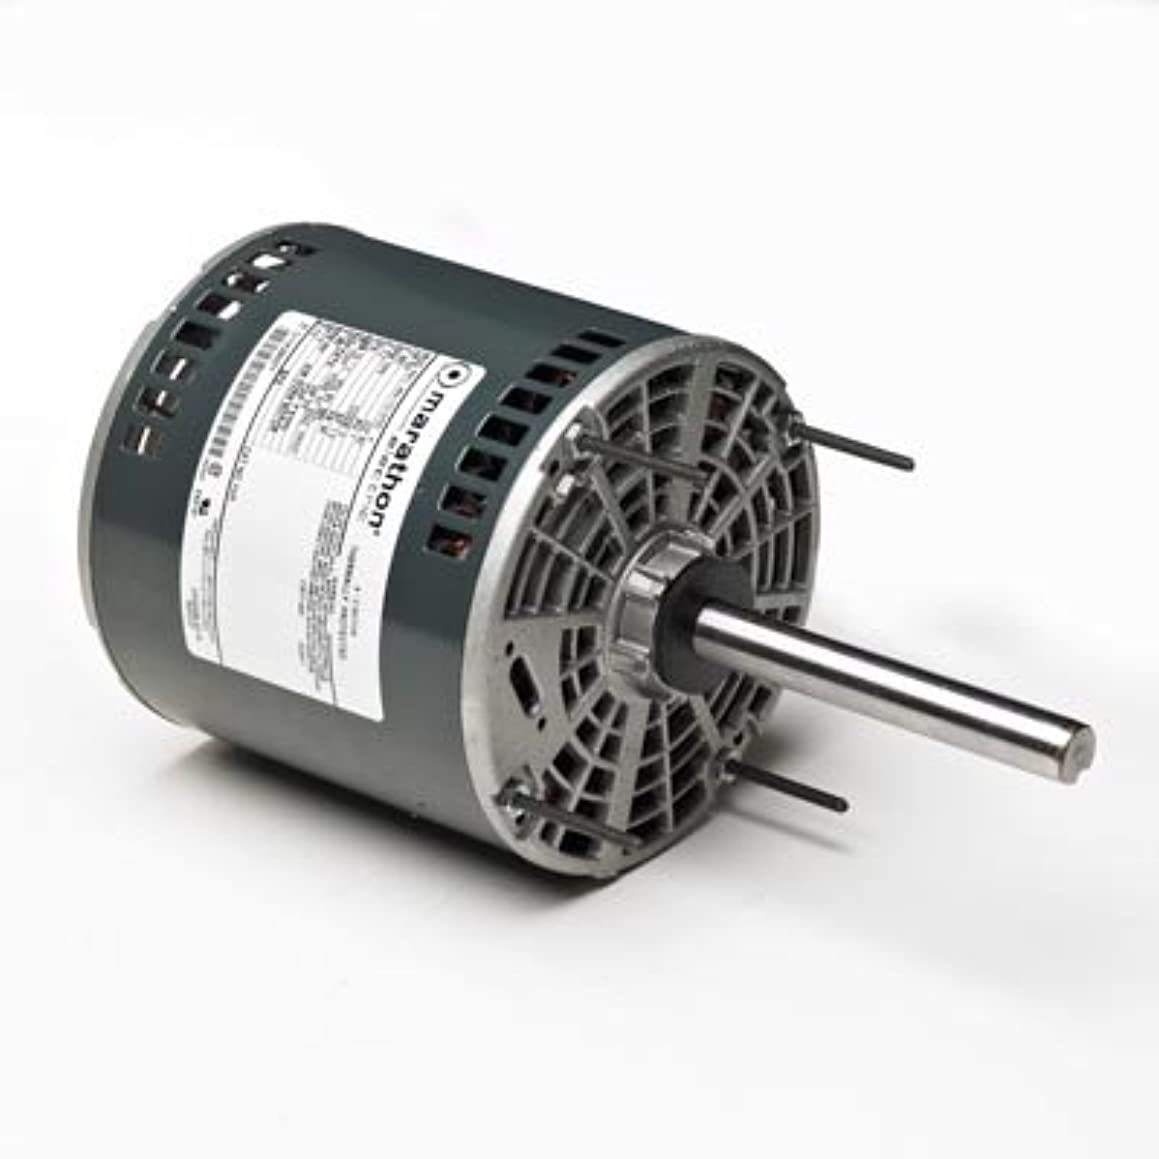 Marathon X085 48Y Frame Open Air Over 48A11O678 Condenser Fan Motor 3/4 hp, 1075 rpm, 208-230 VAC, 1 Phase, 2 Speeds, Ball Bearing, Permanent Split Capacitor, Thru-Bolt